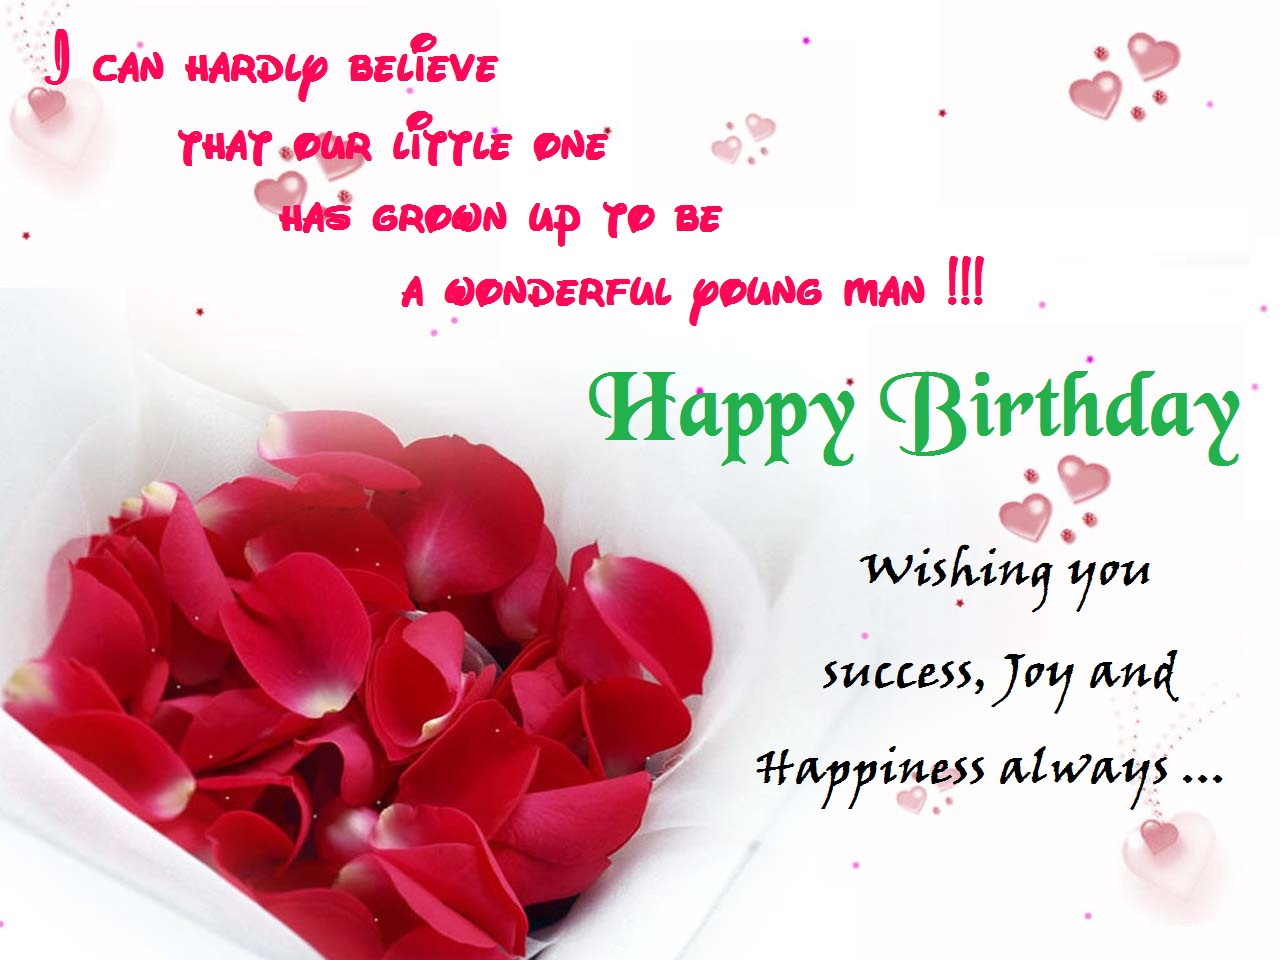 www happy birthday message com ; happybirthday11